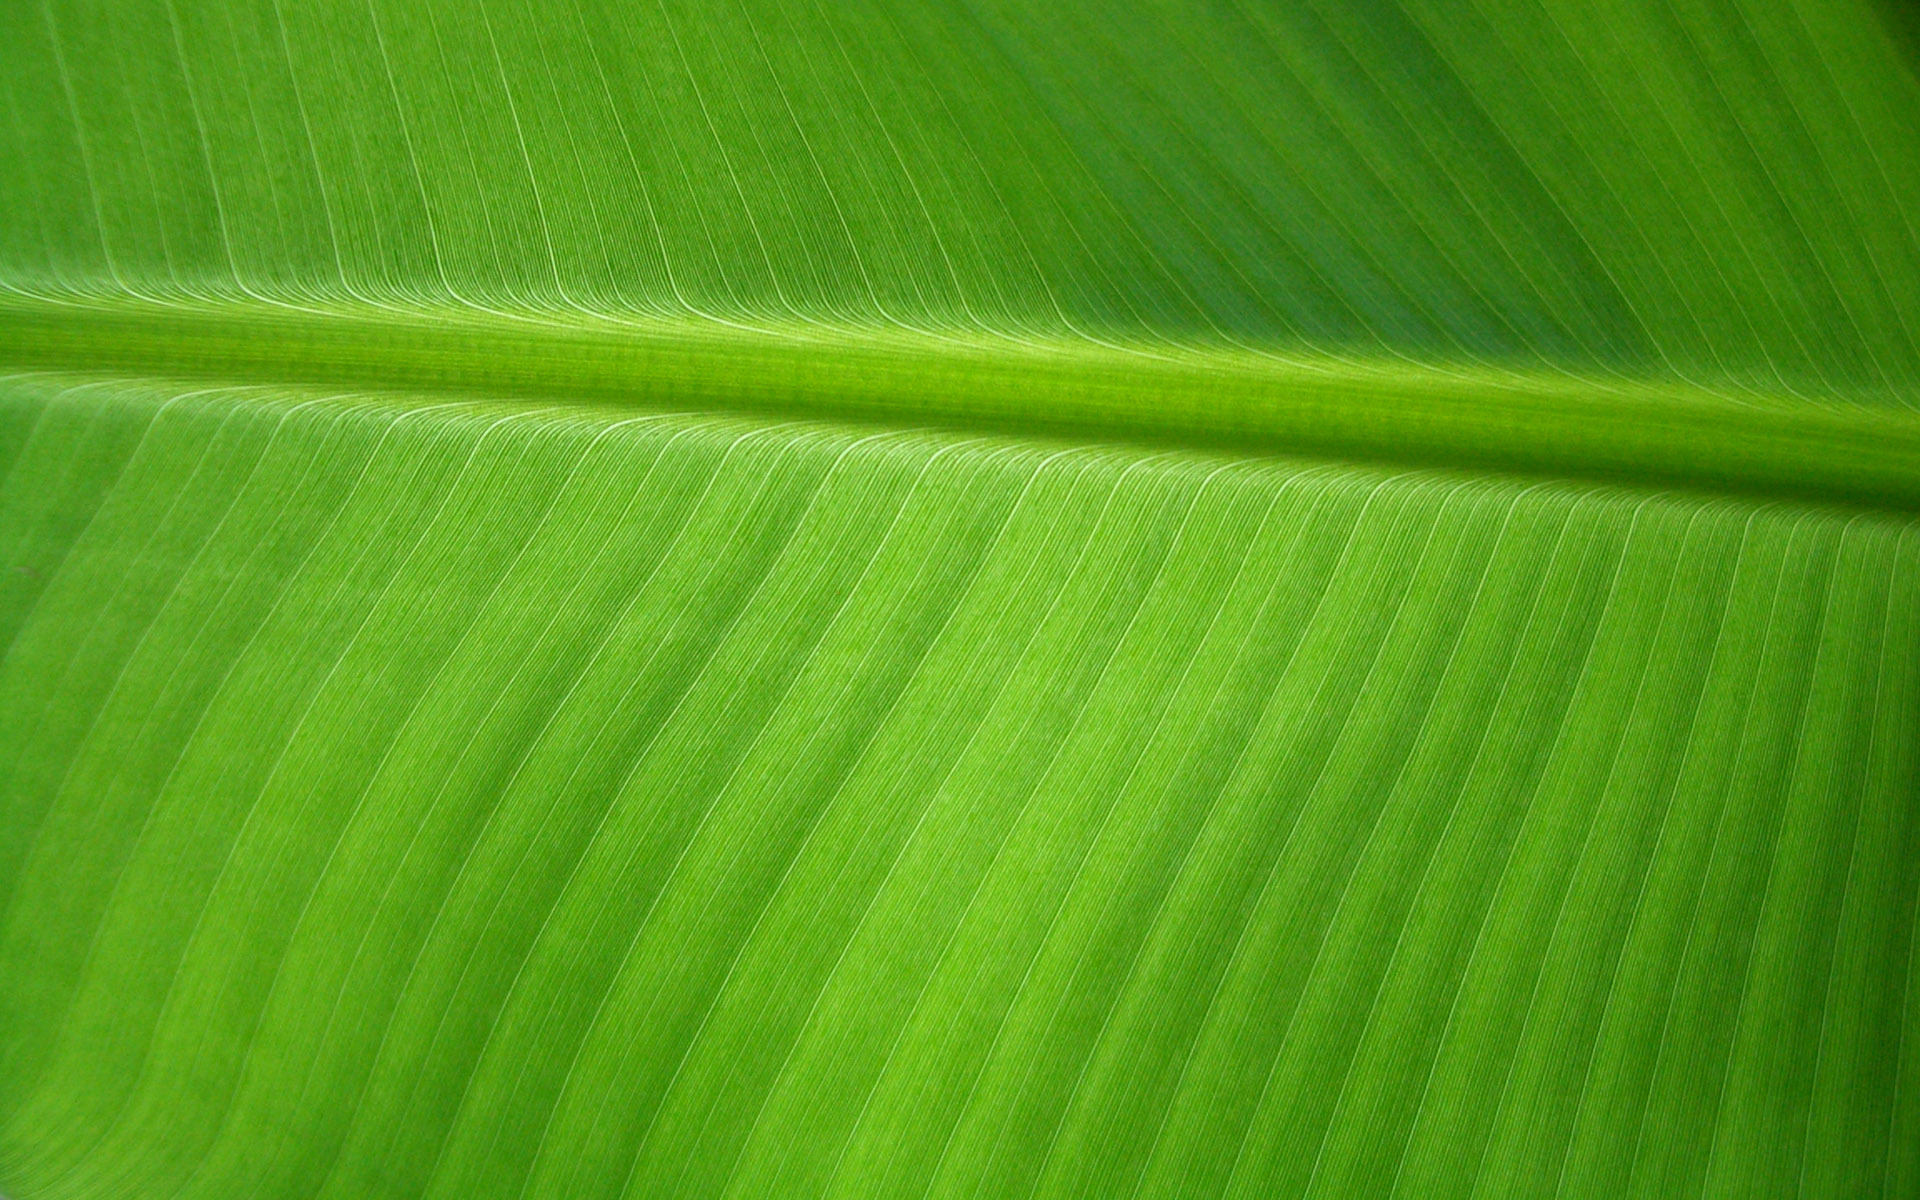 Banana Leaf by OrodrethC 1920x1200